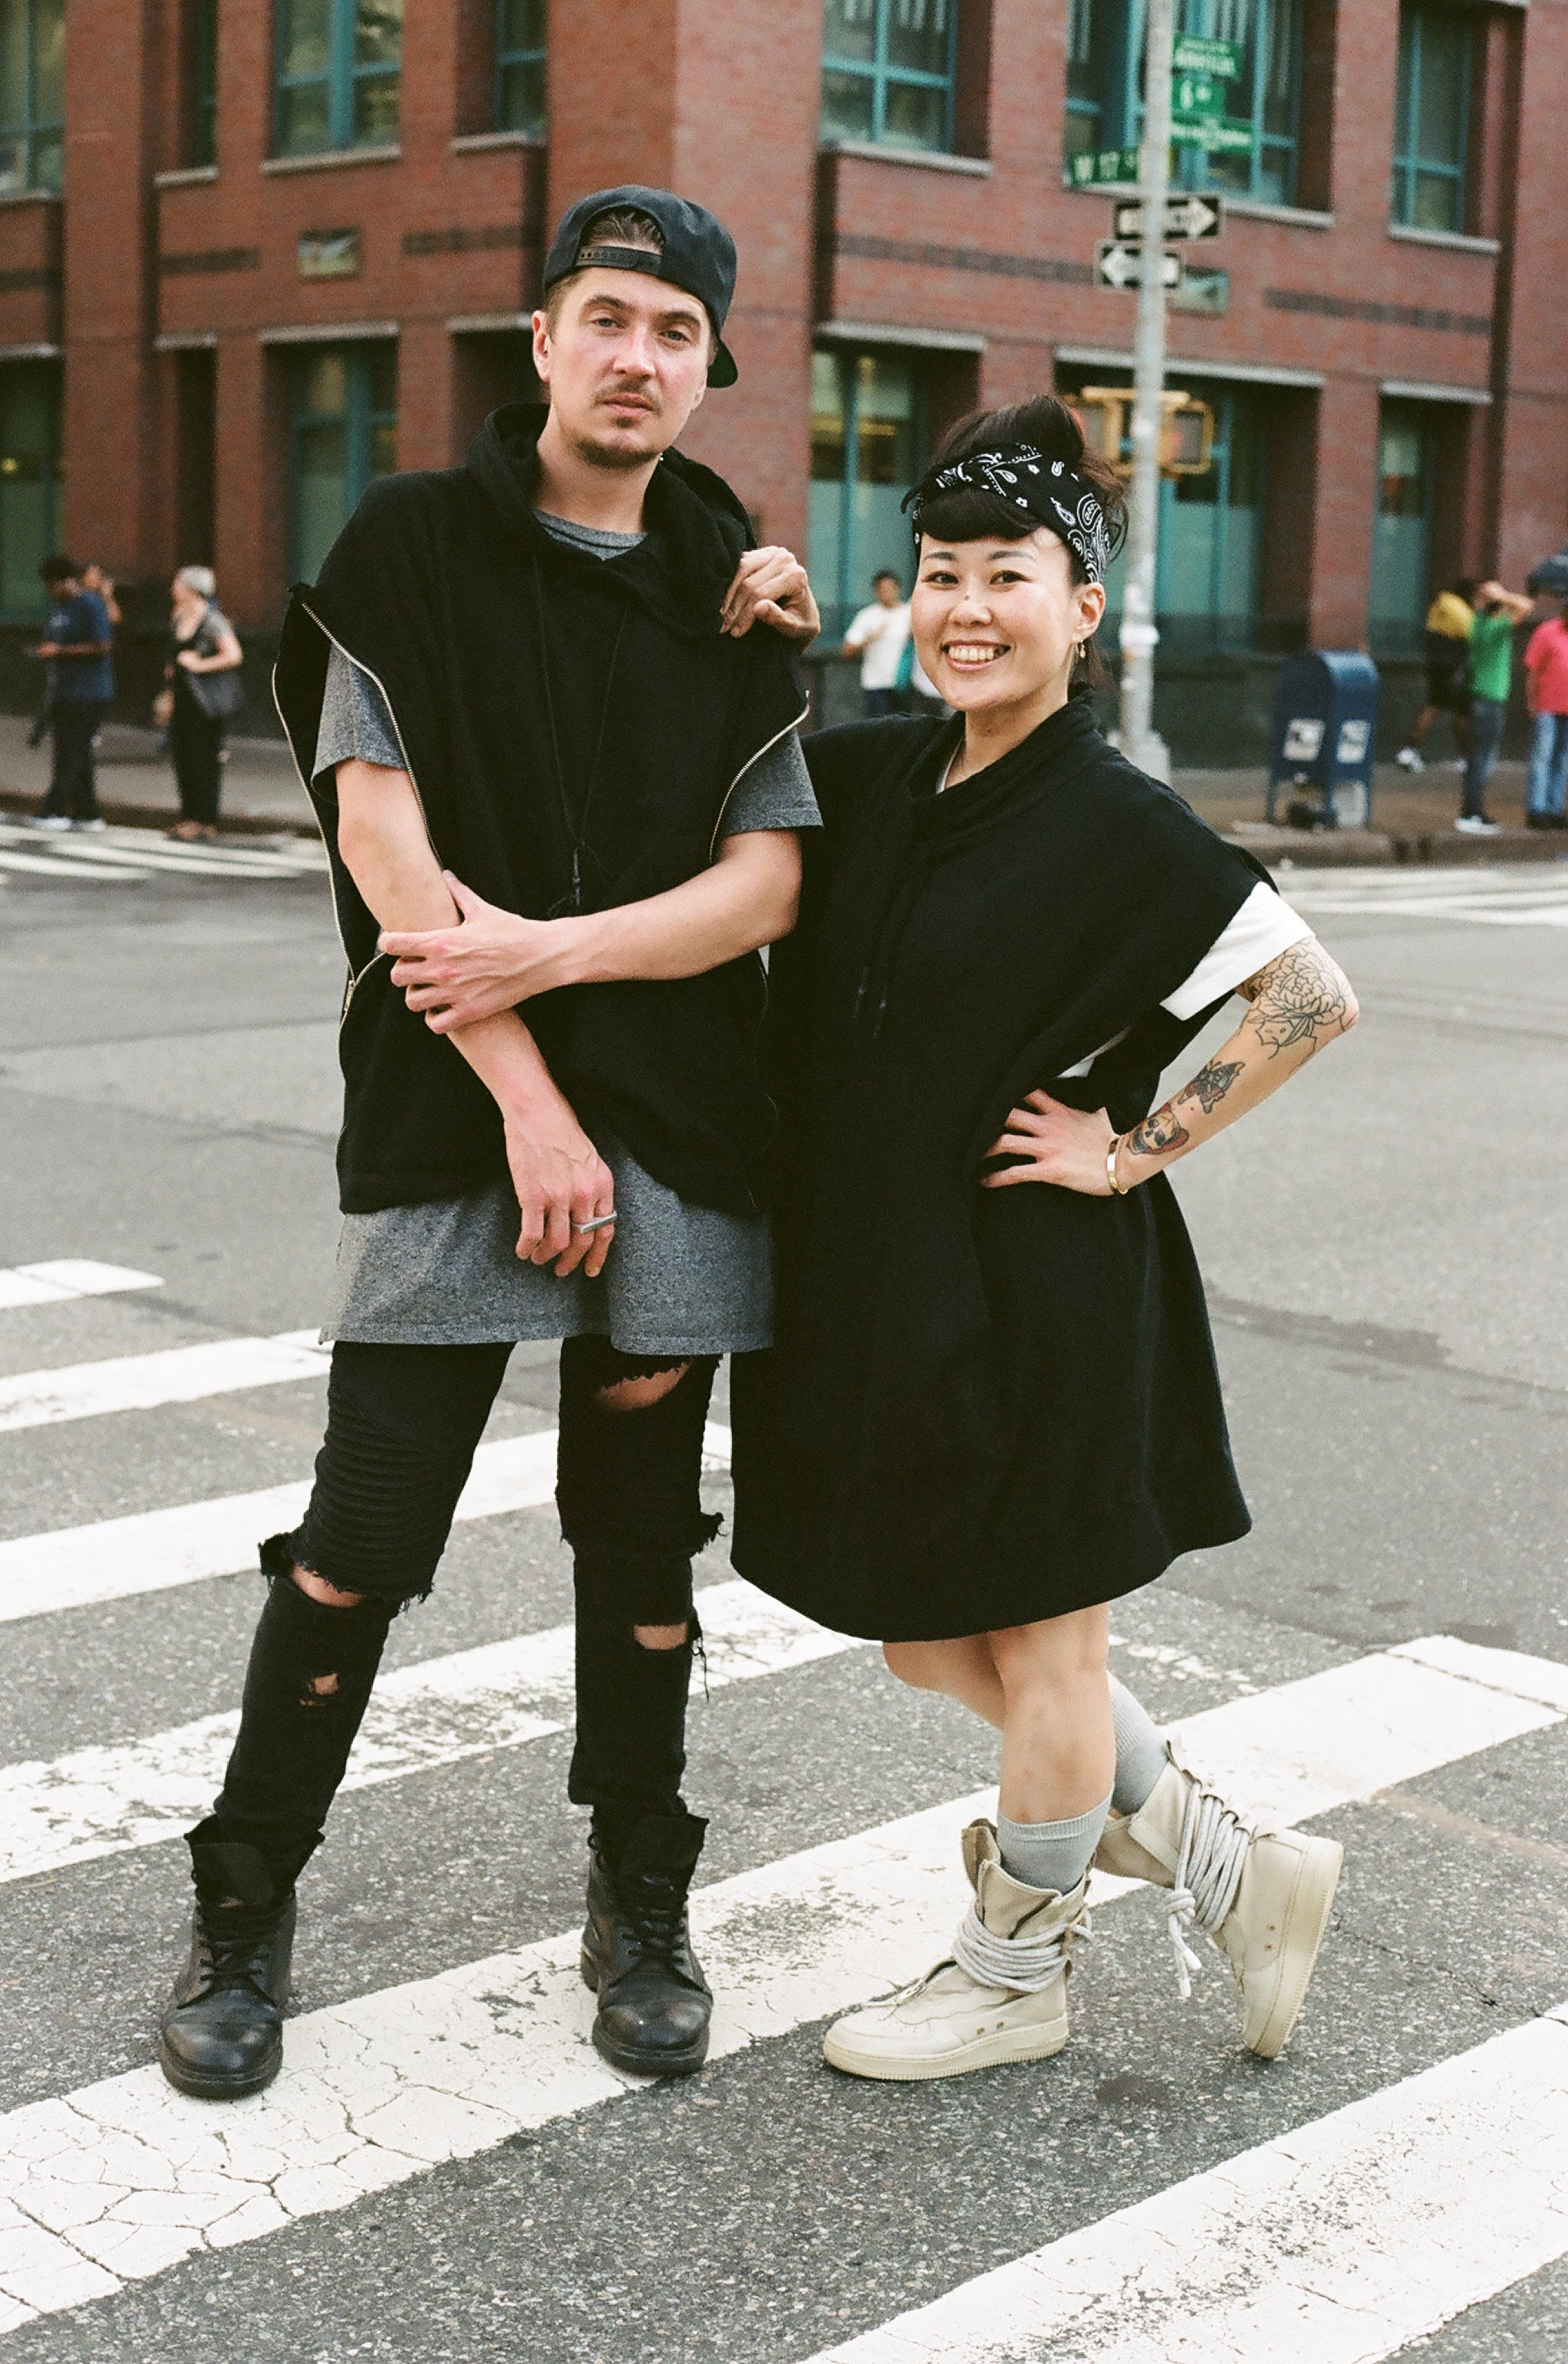 Jayson and Yoko on 35mm film